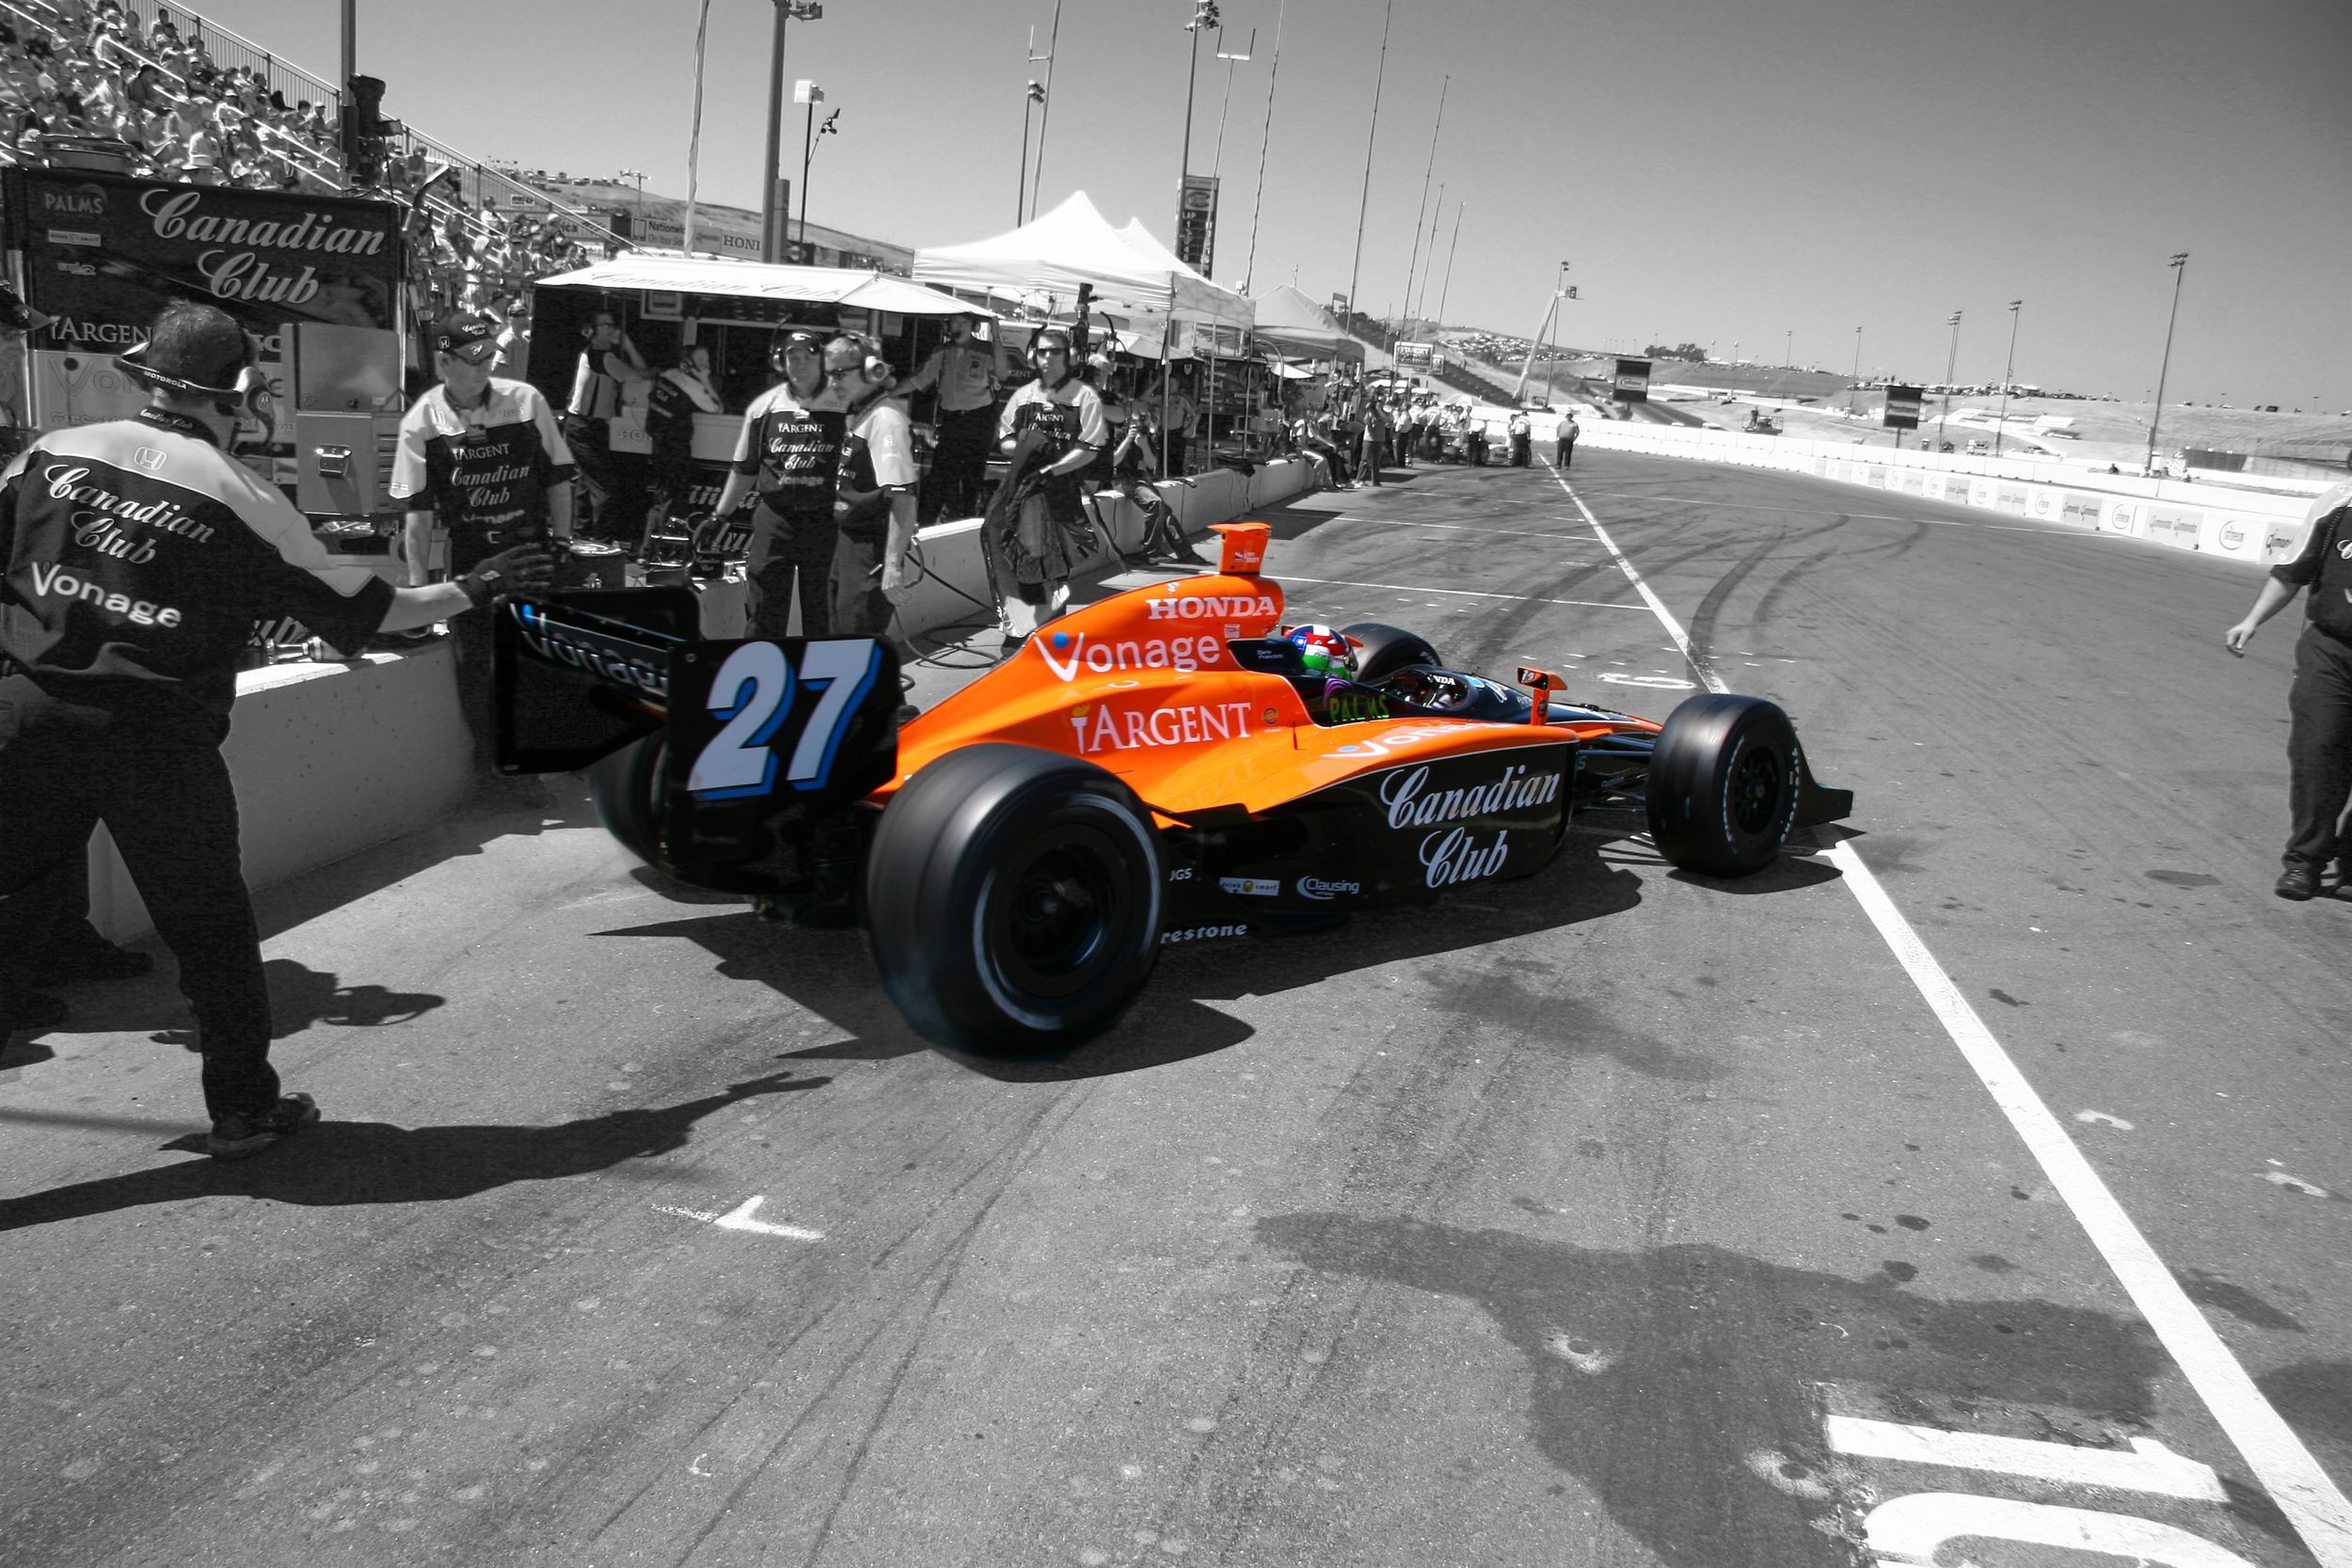 Dario Franchitti leaves the pits during qualifying for Sonoma Grand Prix in 2007. © Mark Farouk-2007